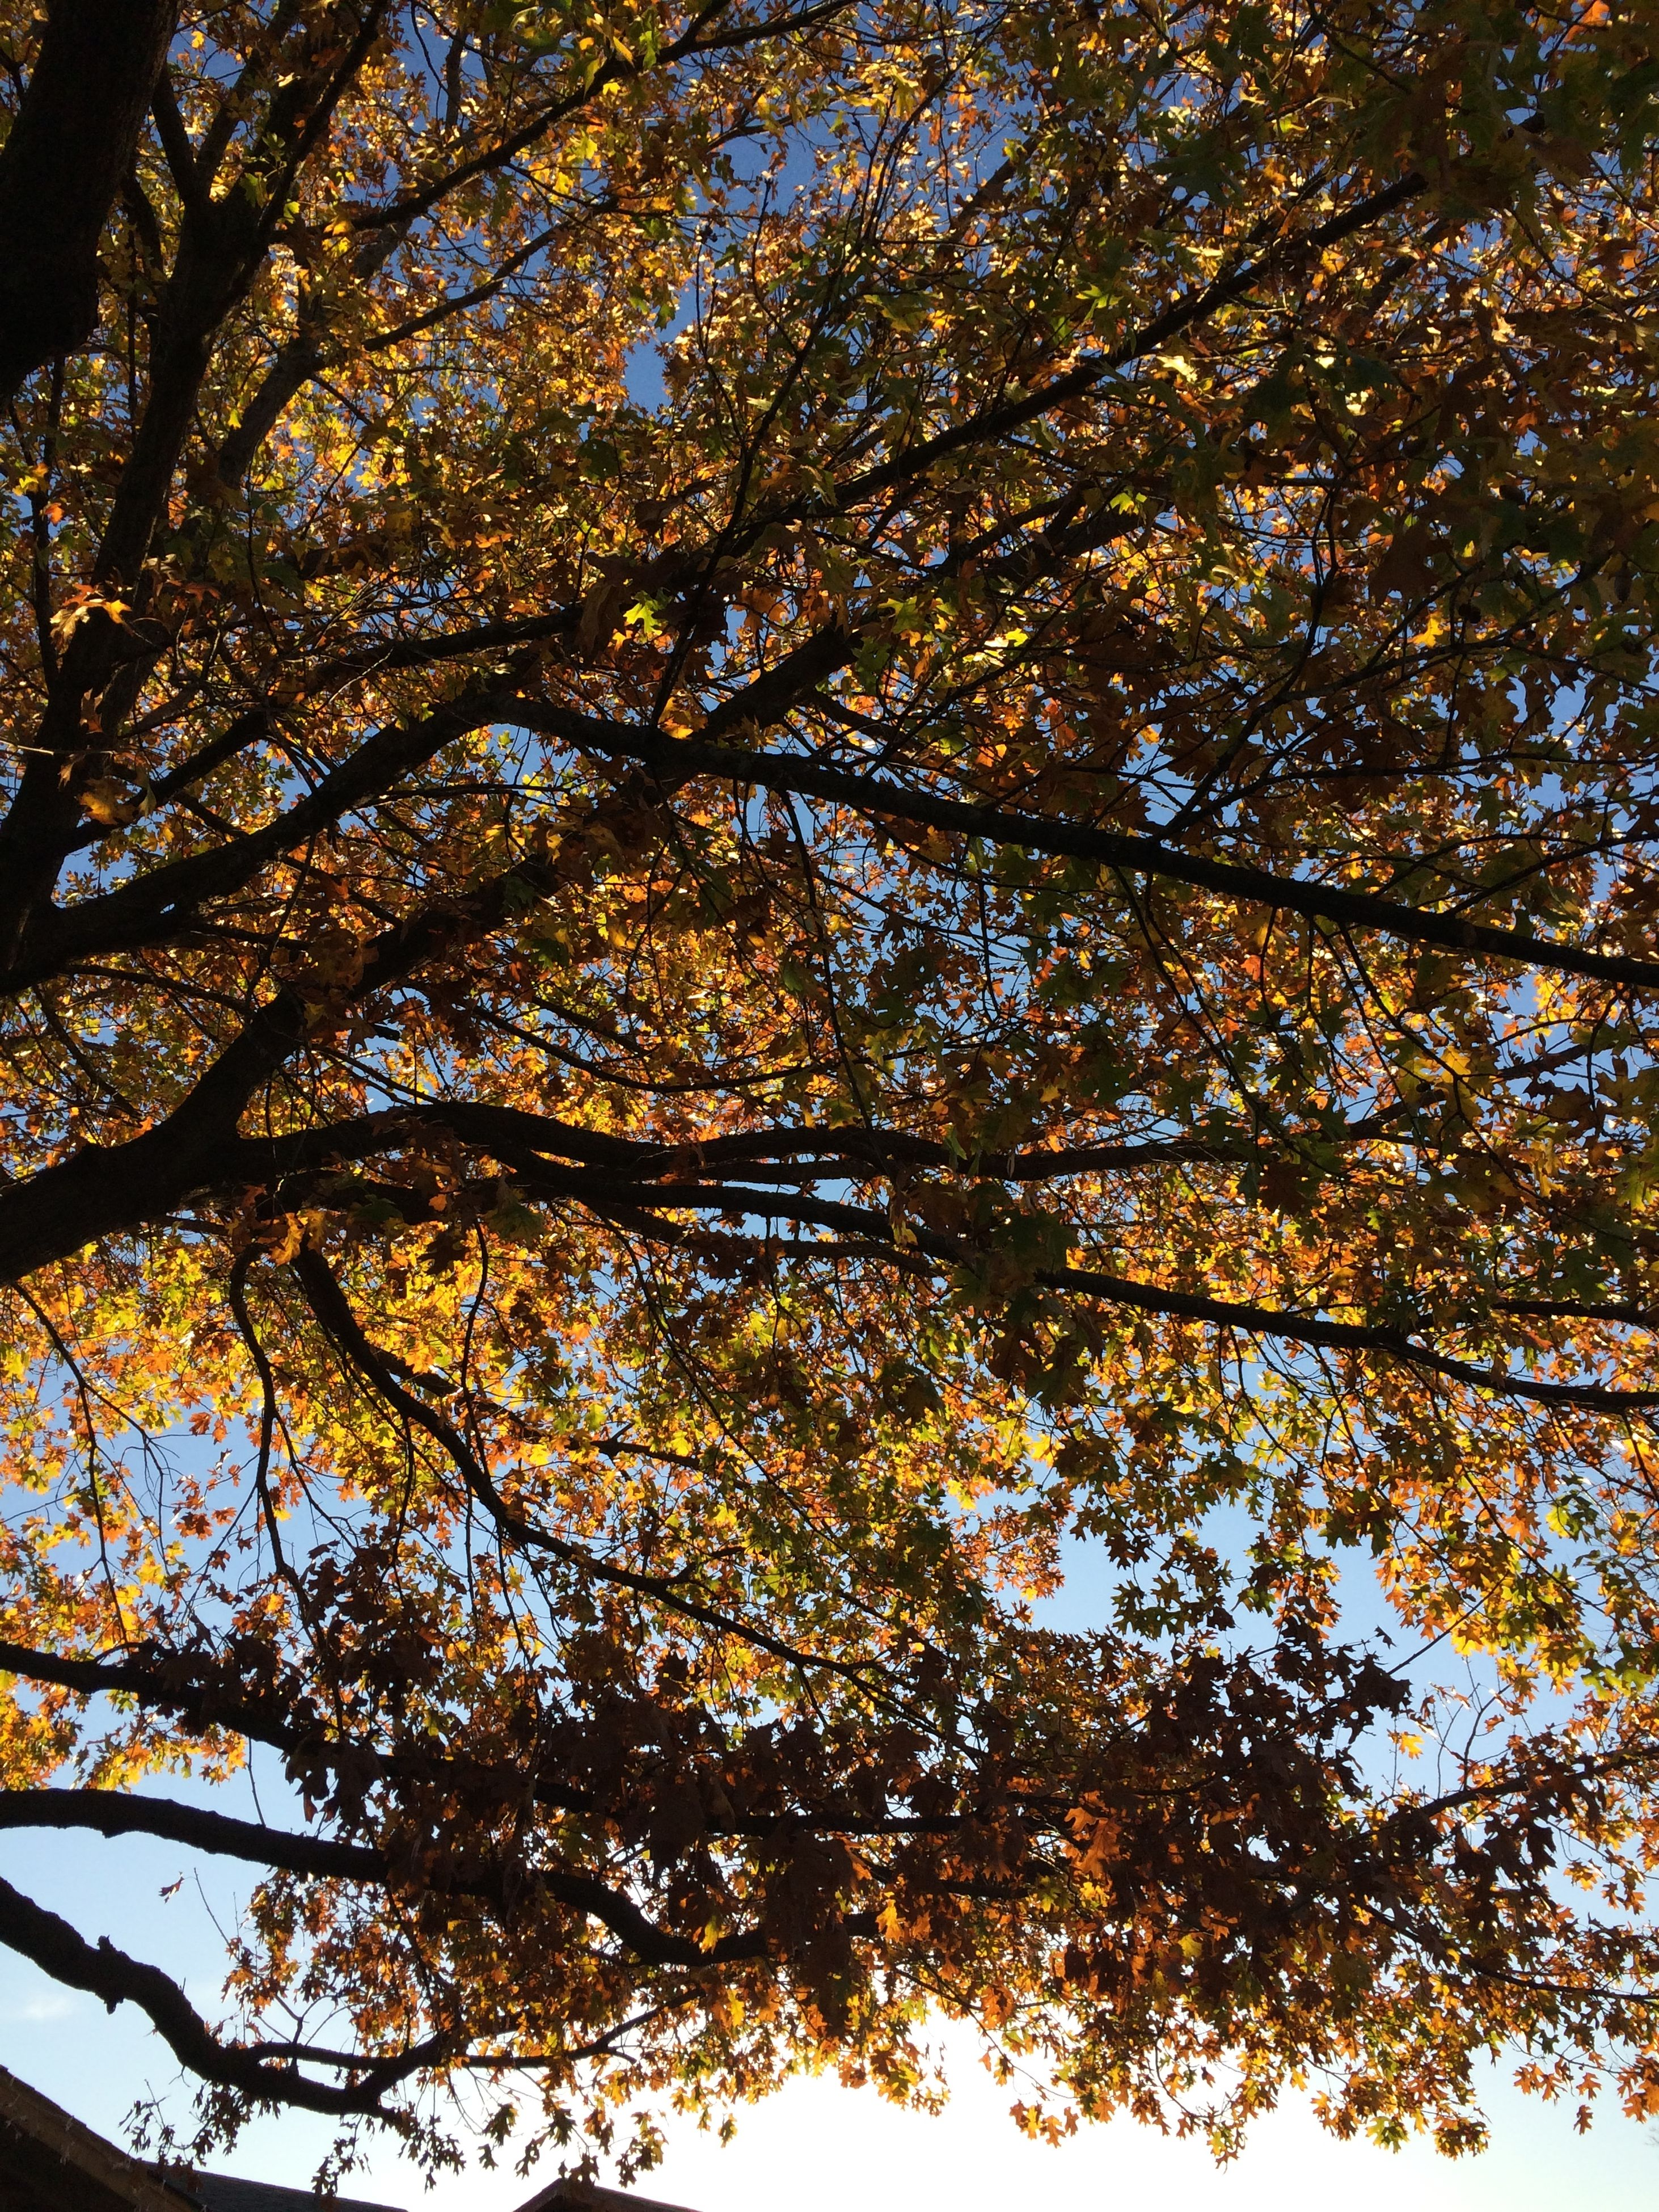 tree, low angle view, growth, branch, autumn, tranquility, nature, beauty in nature, change, scenics, forest, sky, tree trunk, tranquil scene, orange color, clear sky, day, season, outdoors, no people